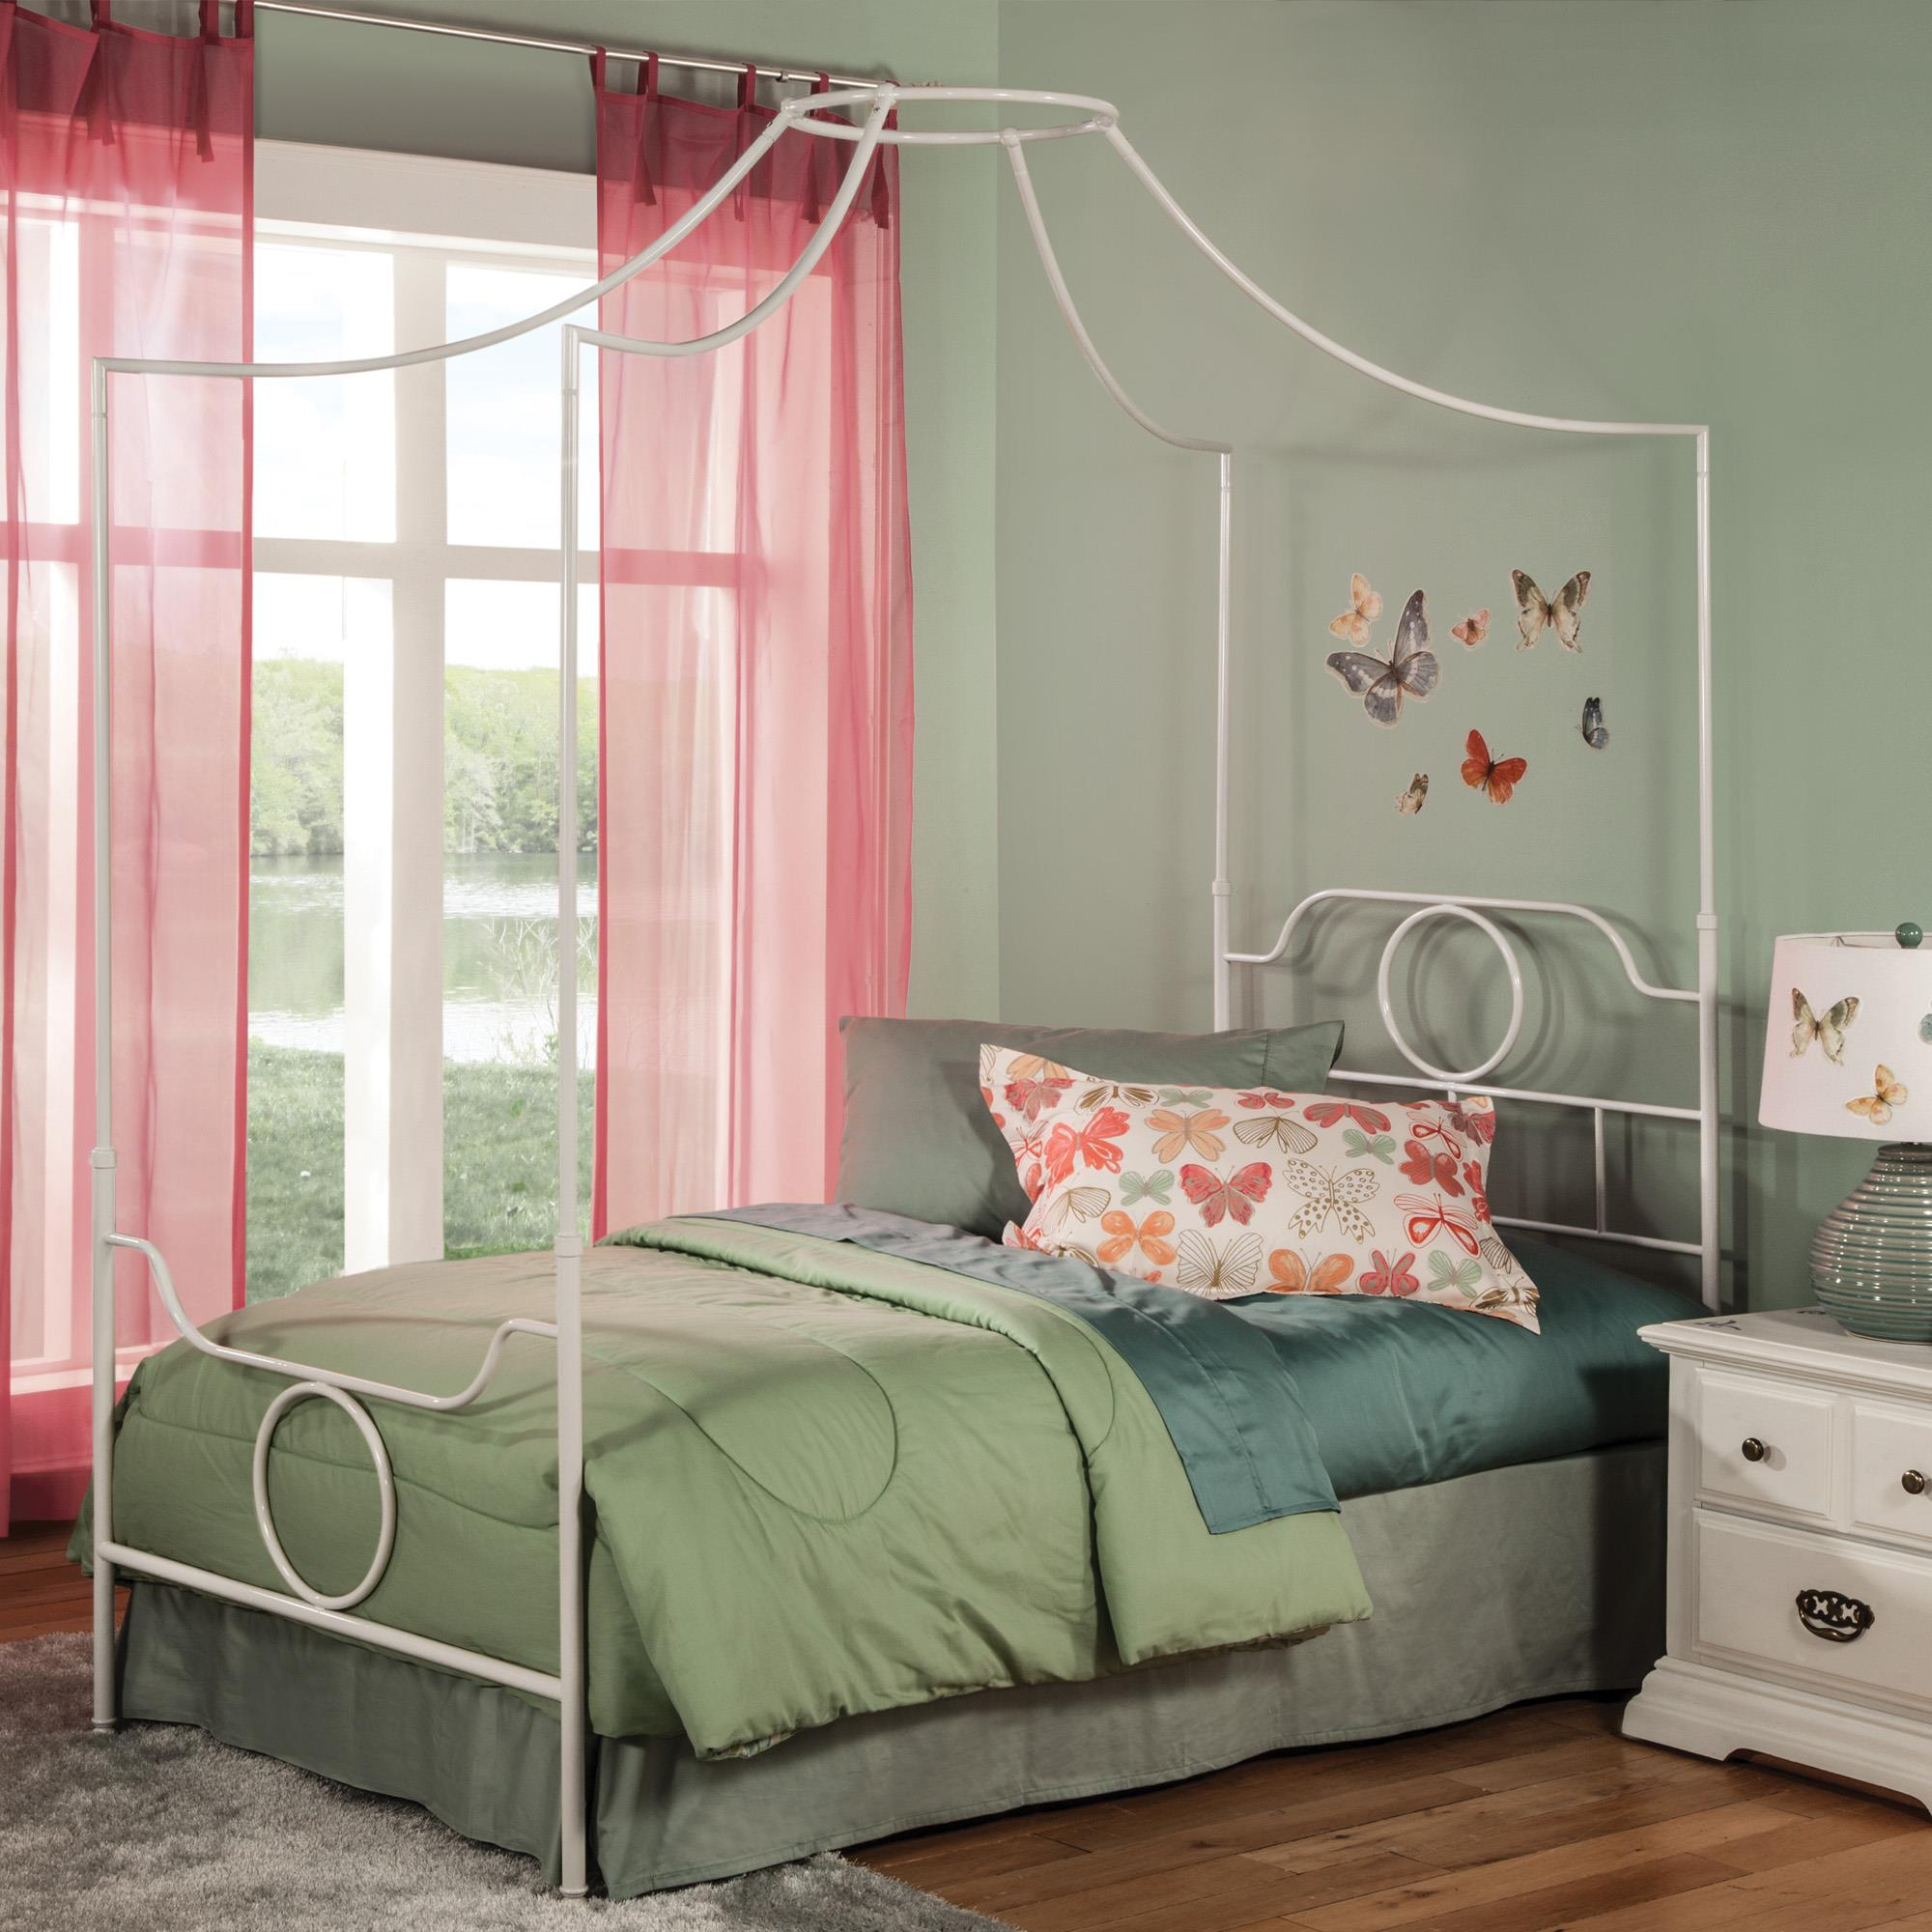 Emsworth Kids Metal Canopy Bed with Geometric Shape Design by Fashion Bed Group